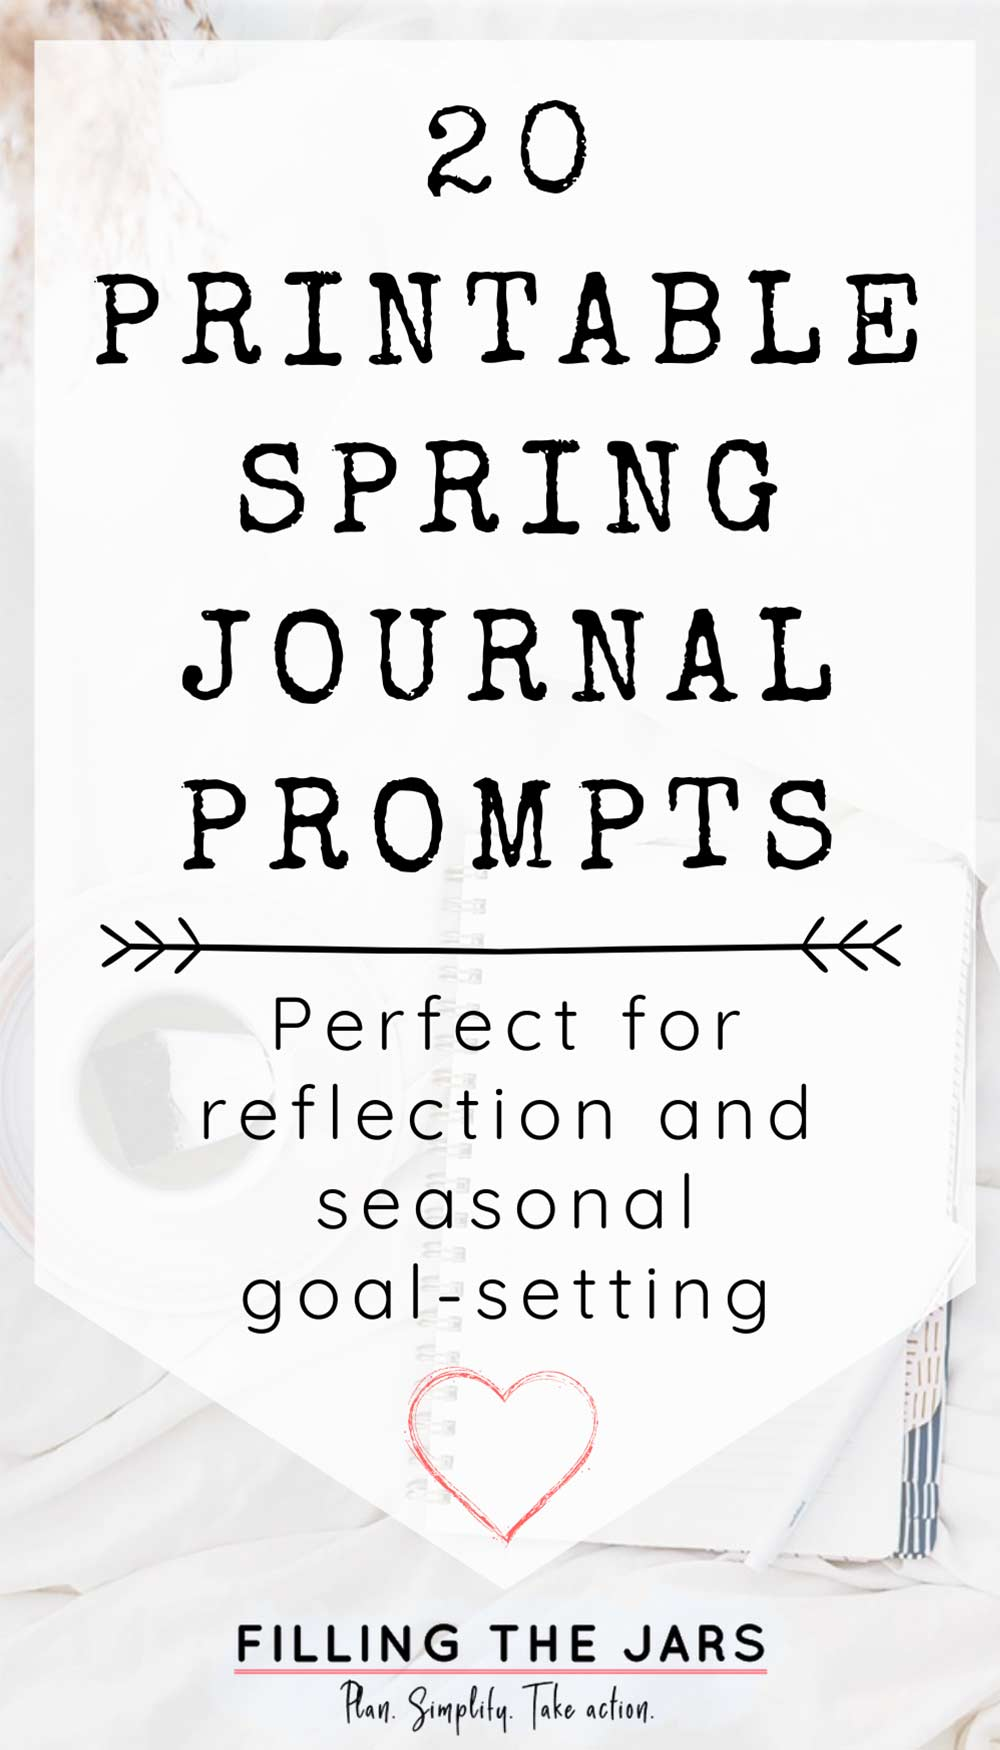 Text printable spring journal prompts for reflection and seasonal goal-setting on white background over image of open journal on white bedding.